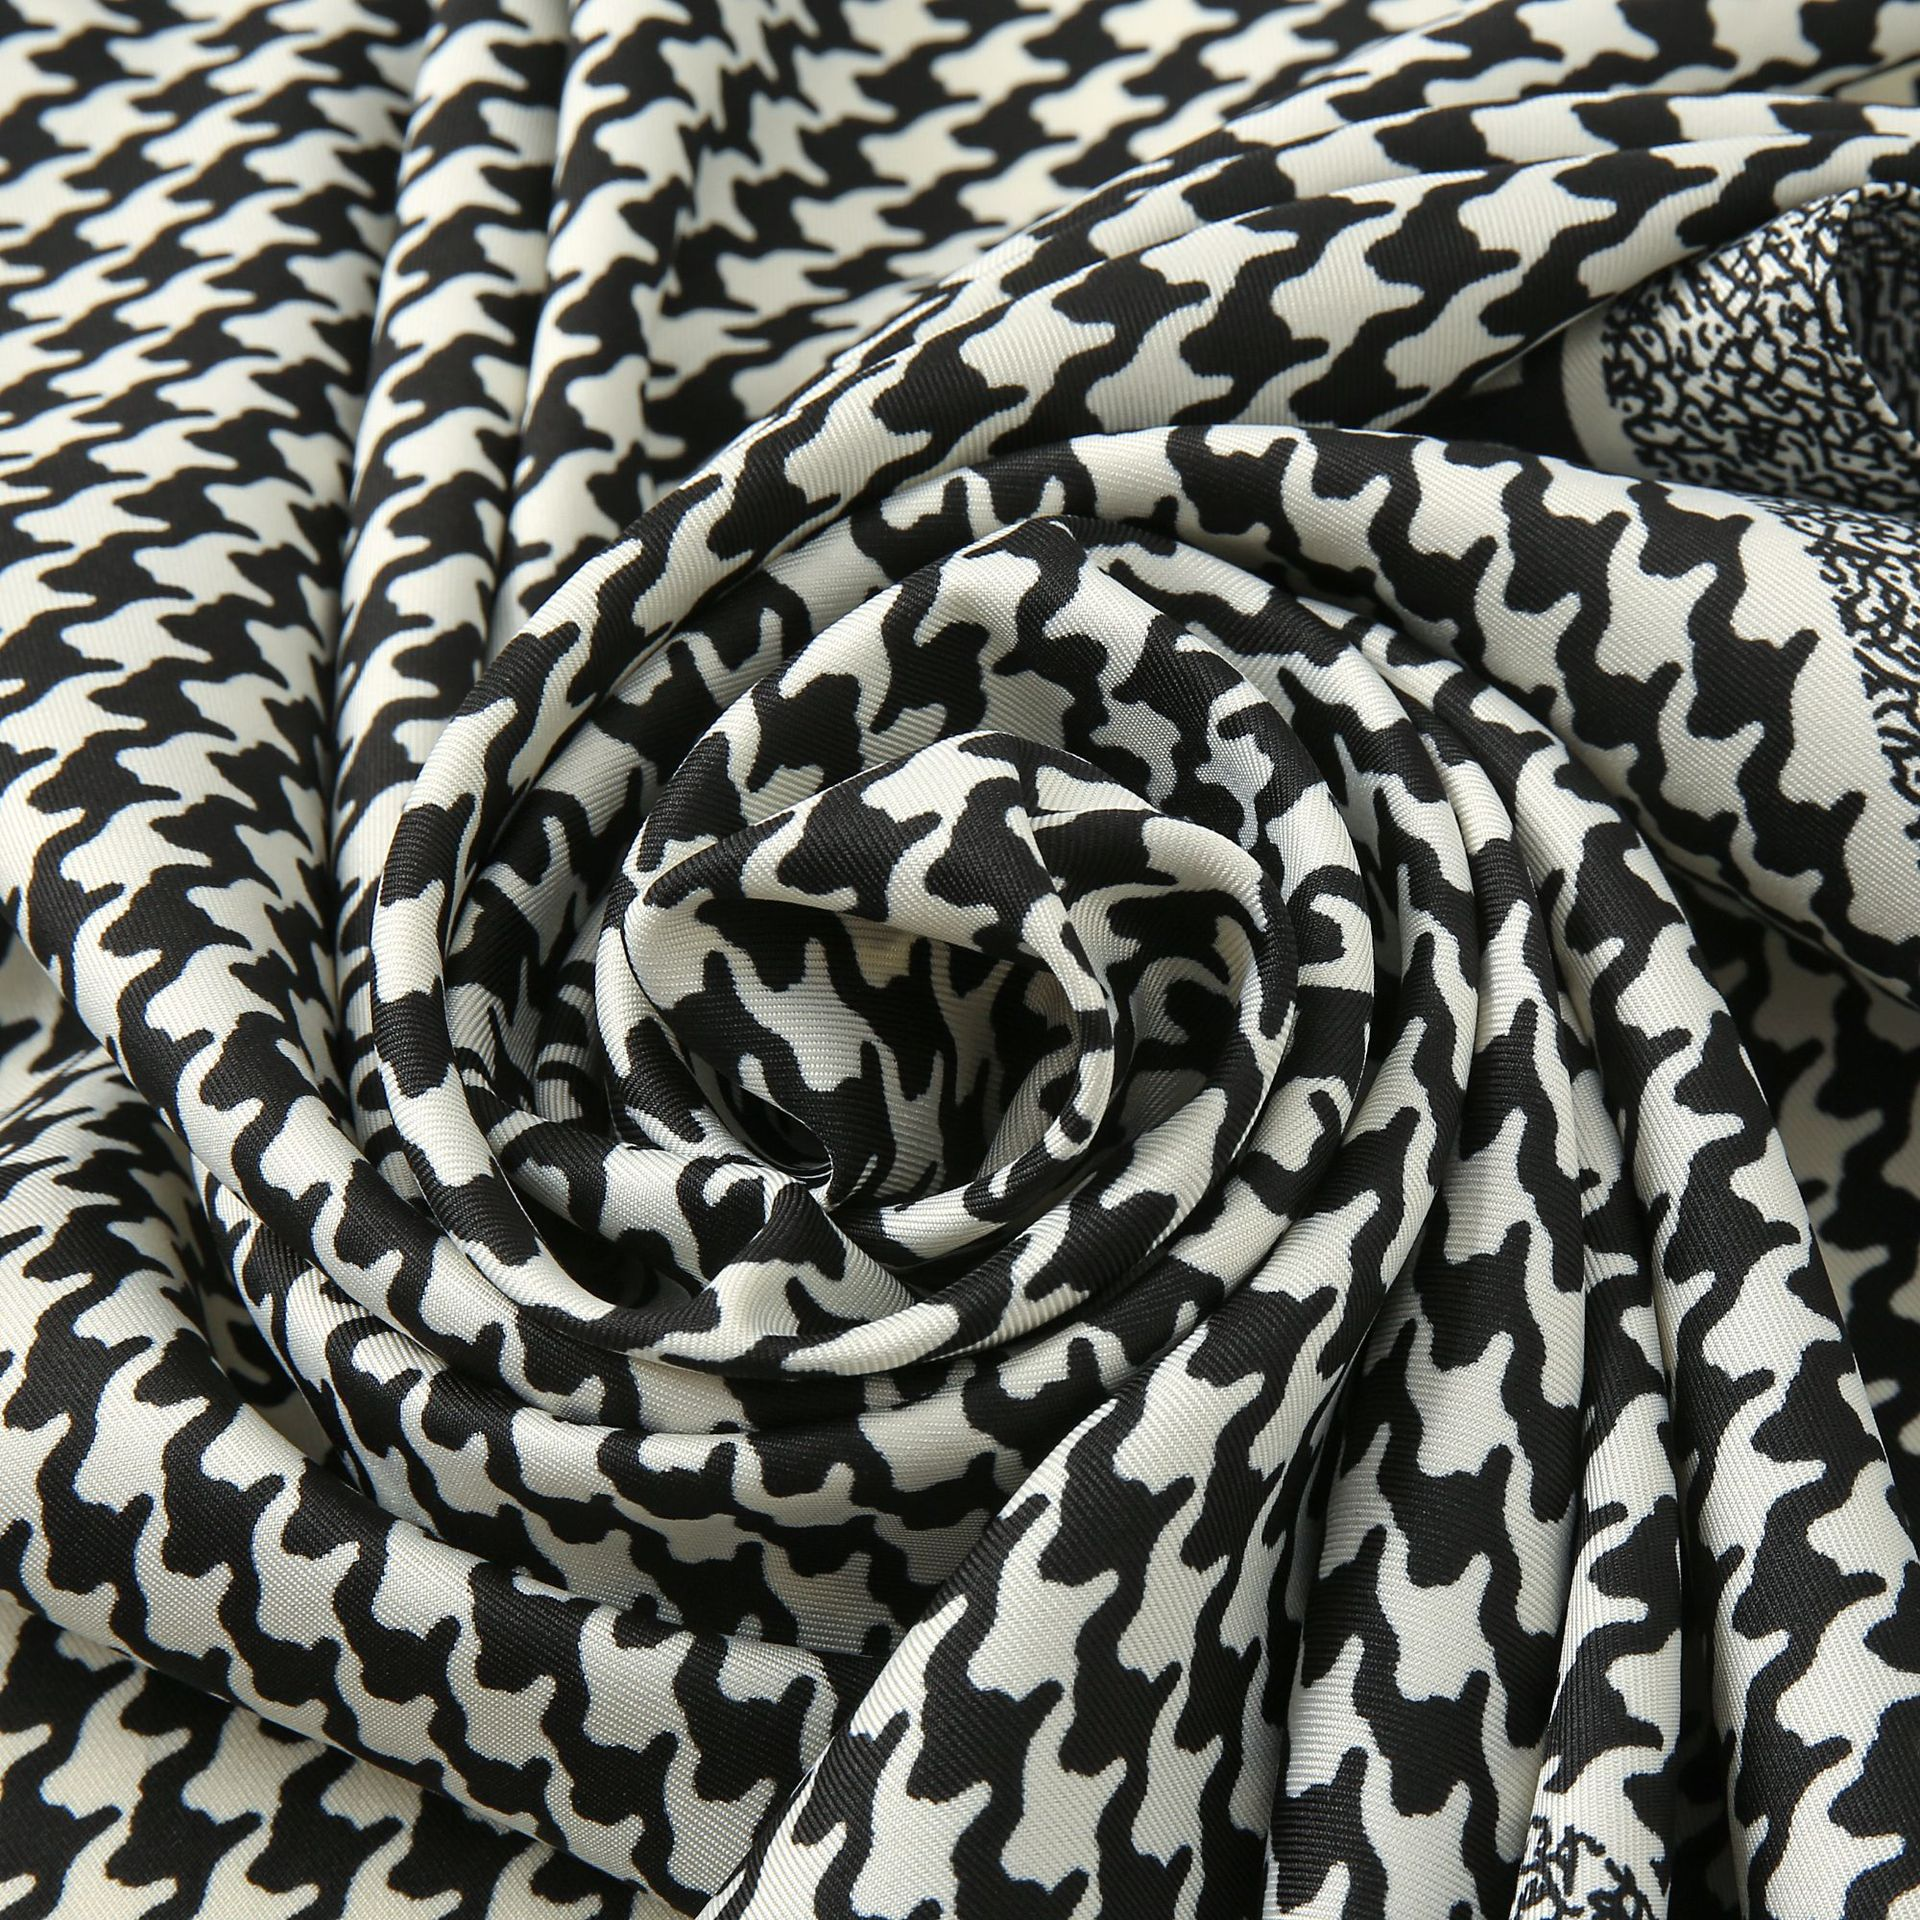 Classic Large Square Houndstooth Pattern Head Scarf for City Fashion